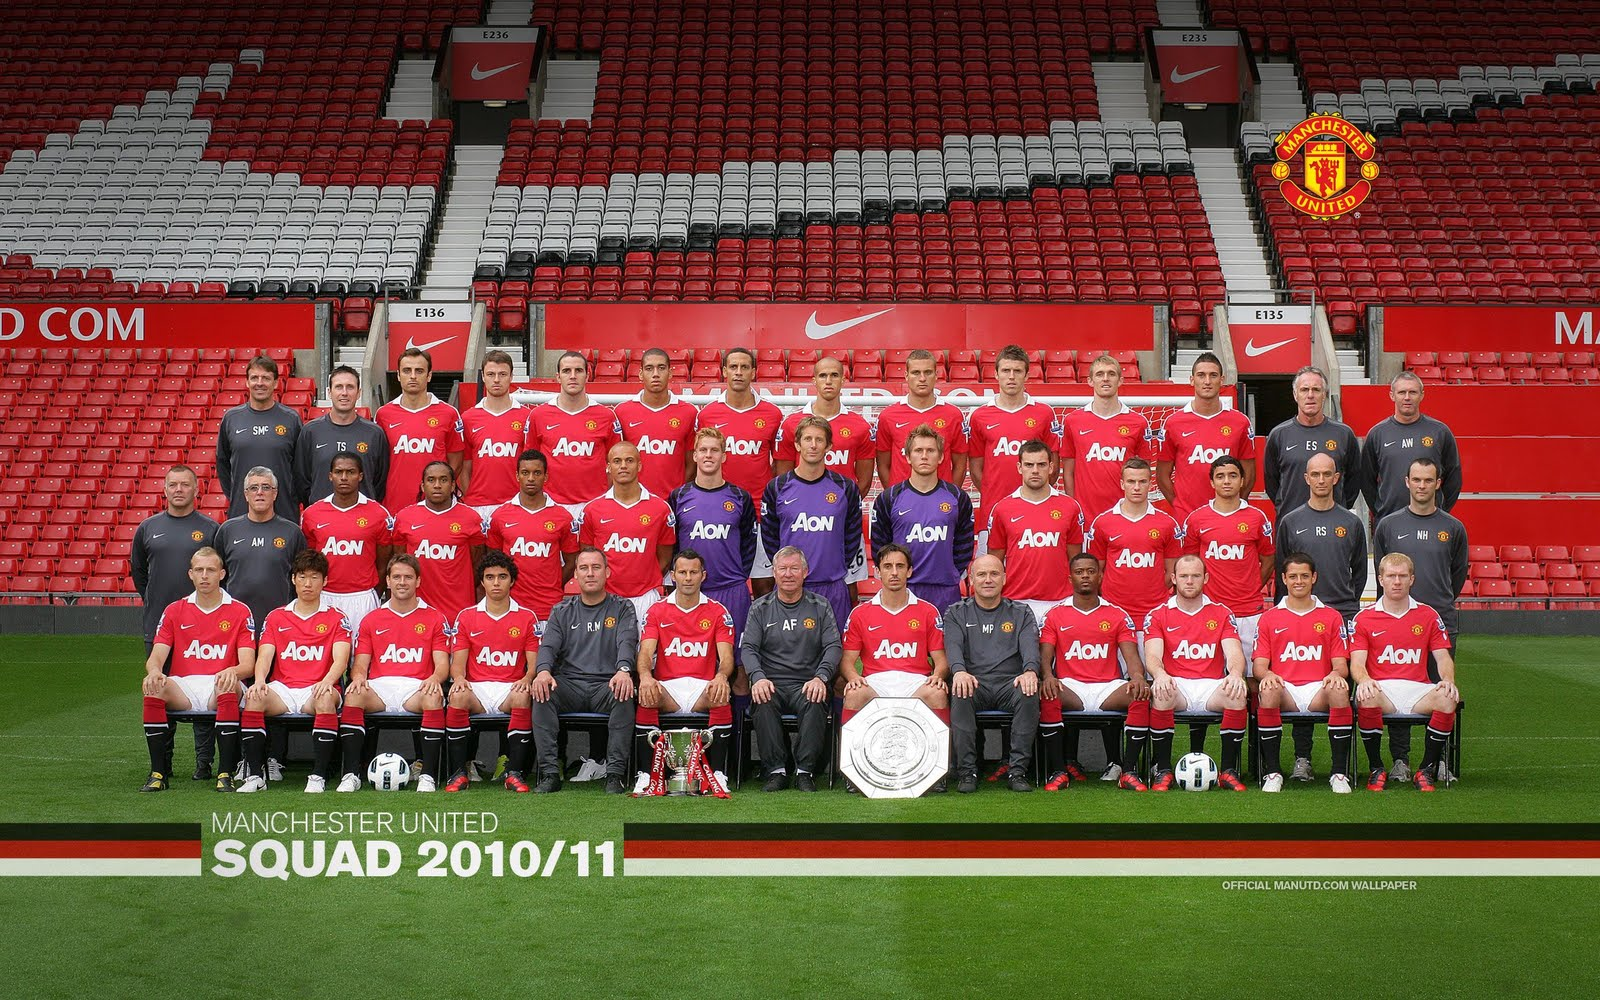 http://2.bp.blogspot.com/-IYjdeR4DDV0/TgTkpU5iT-I/AAAAAAAABBI/5RLhVKqnd78/s1600/Manchester-United-Squad-Wallpaper-2010-2011.jpeg